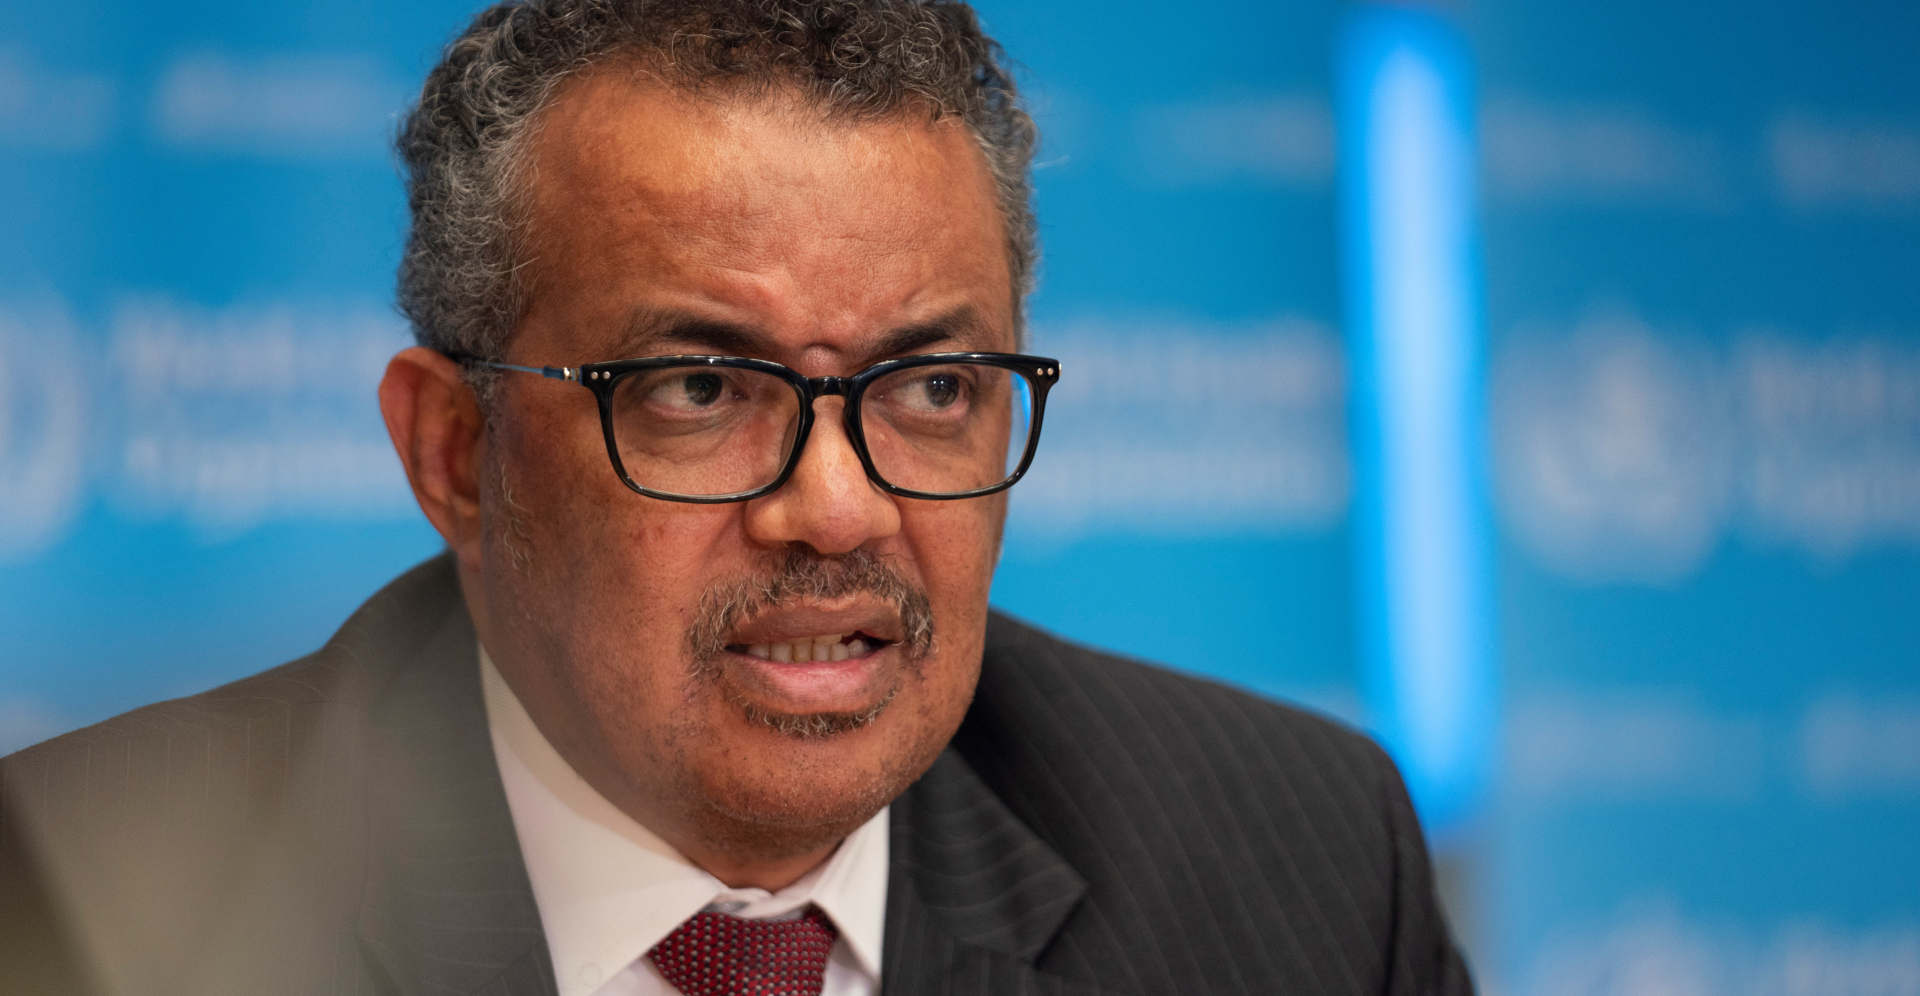 WHO Director-General Tedros Adhanom Ghebreyesus urged nations to find new cases and do everything to control the virus. Photo: Reuters